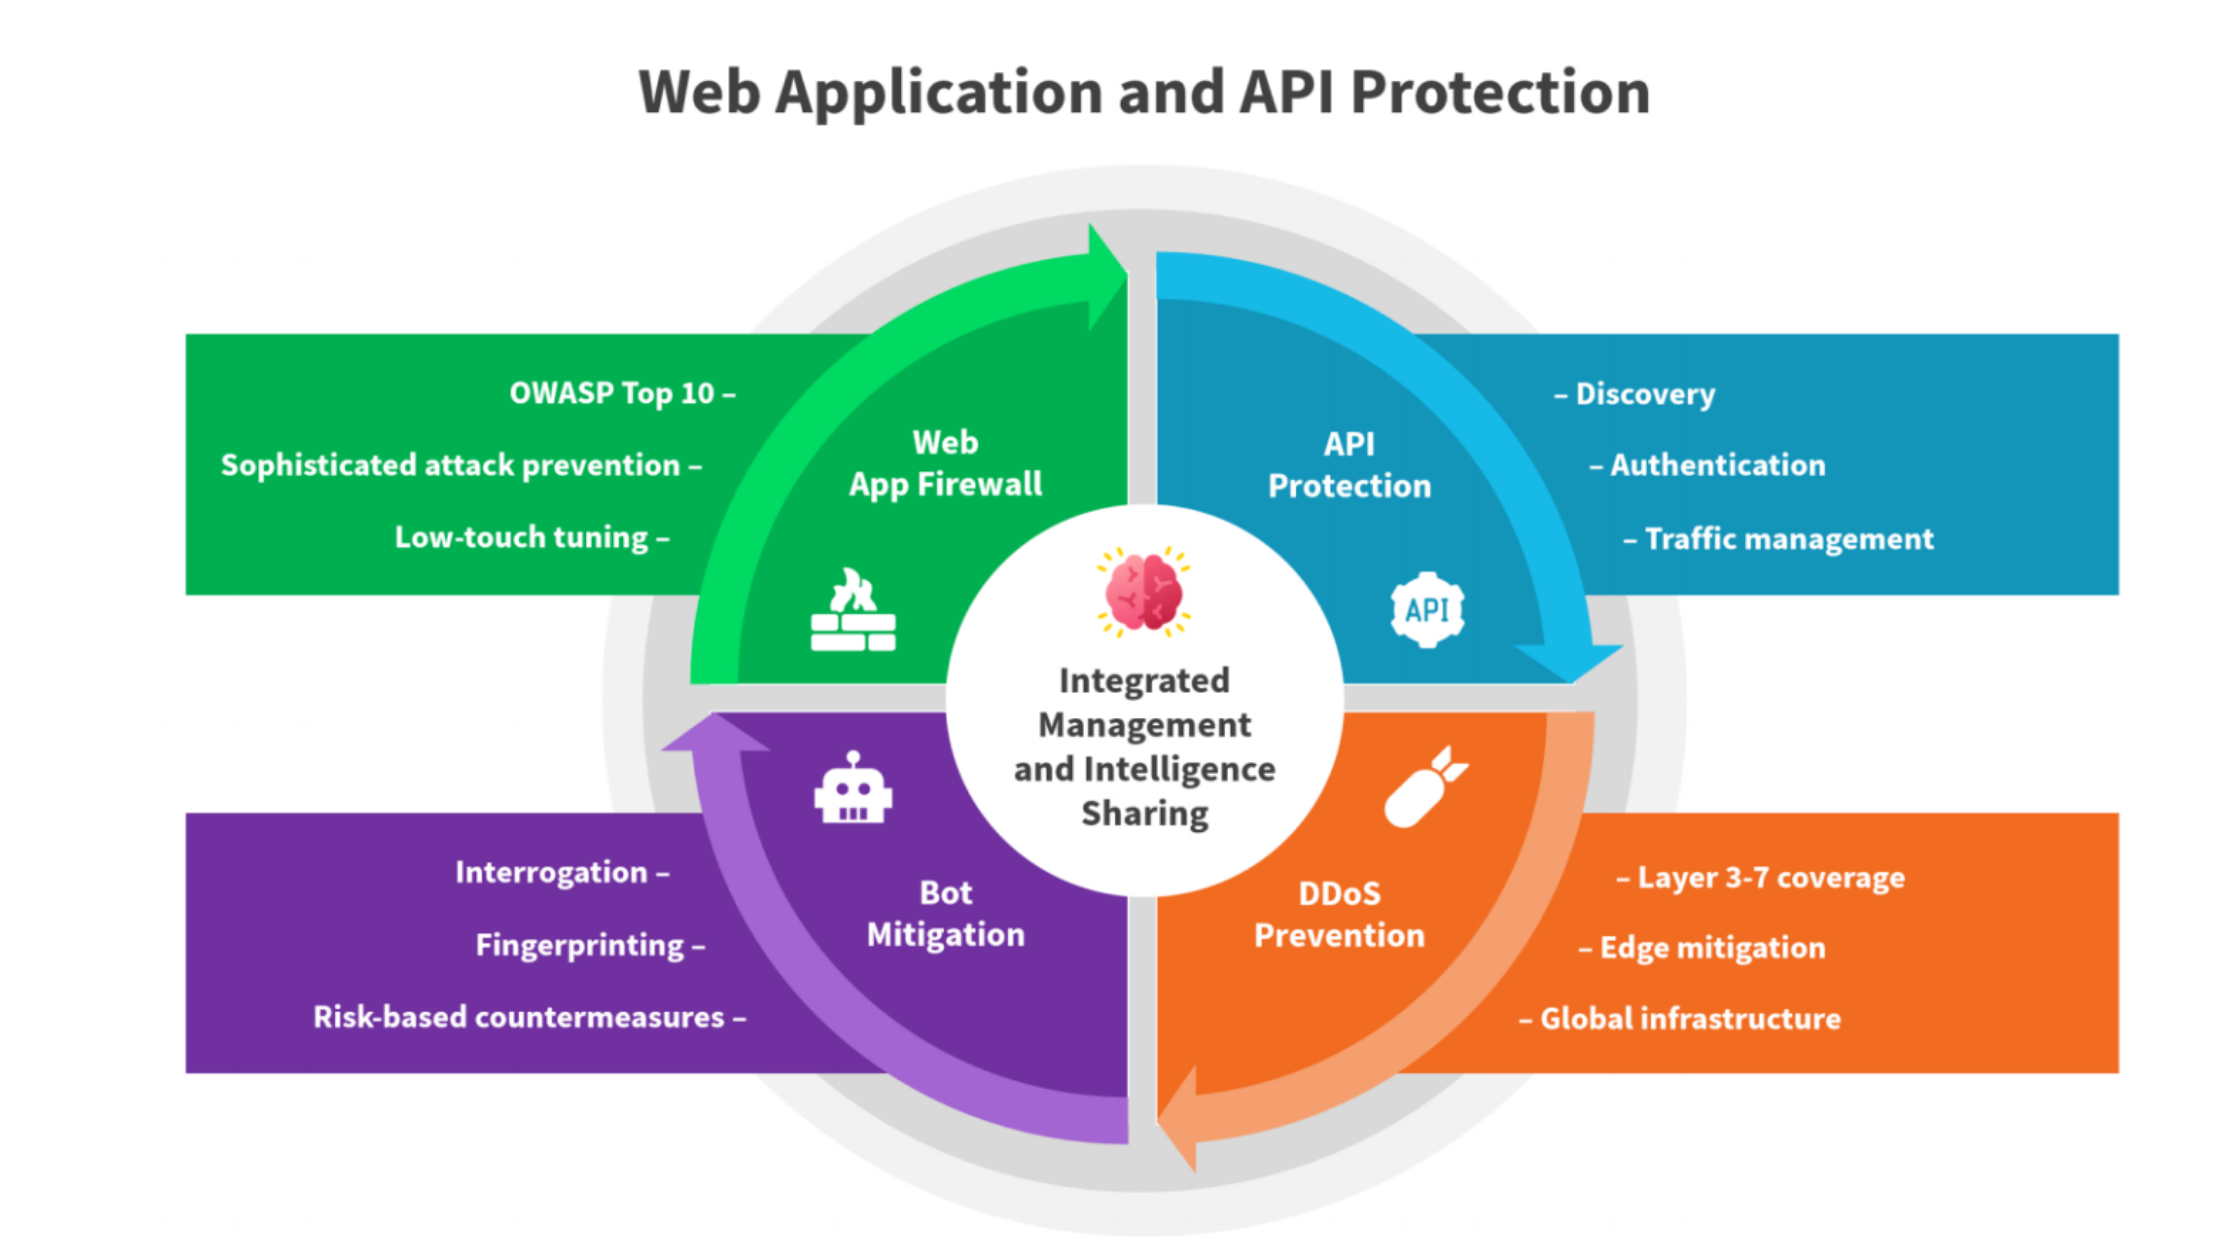 Web Application and API Protection diagram Enterprise Strategy Group